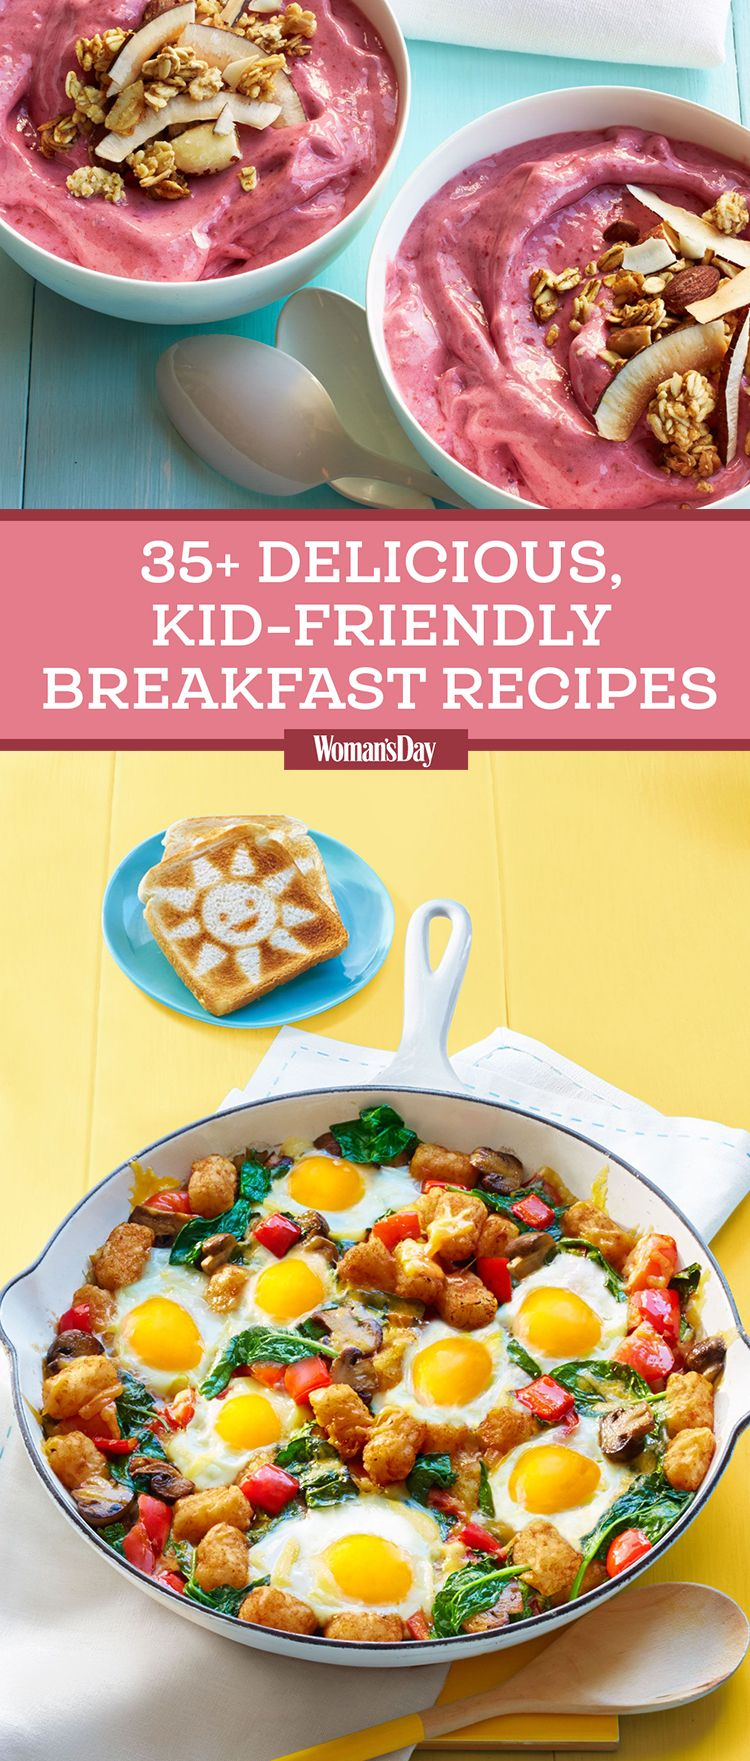 Discussion on this topic: 5 Winter Breakfast Ideas to Warm You , 5-winter-breakfast-ideas-to-warm-you/